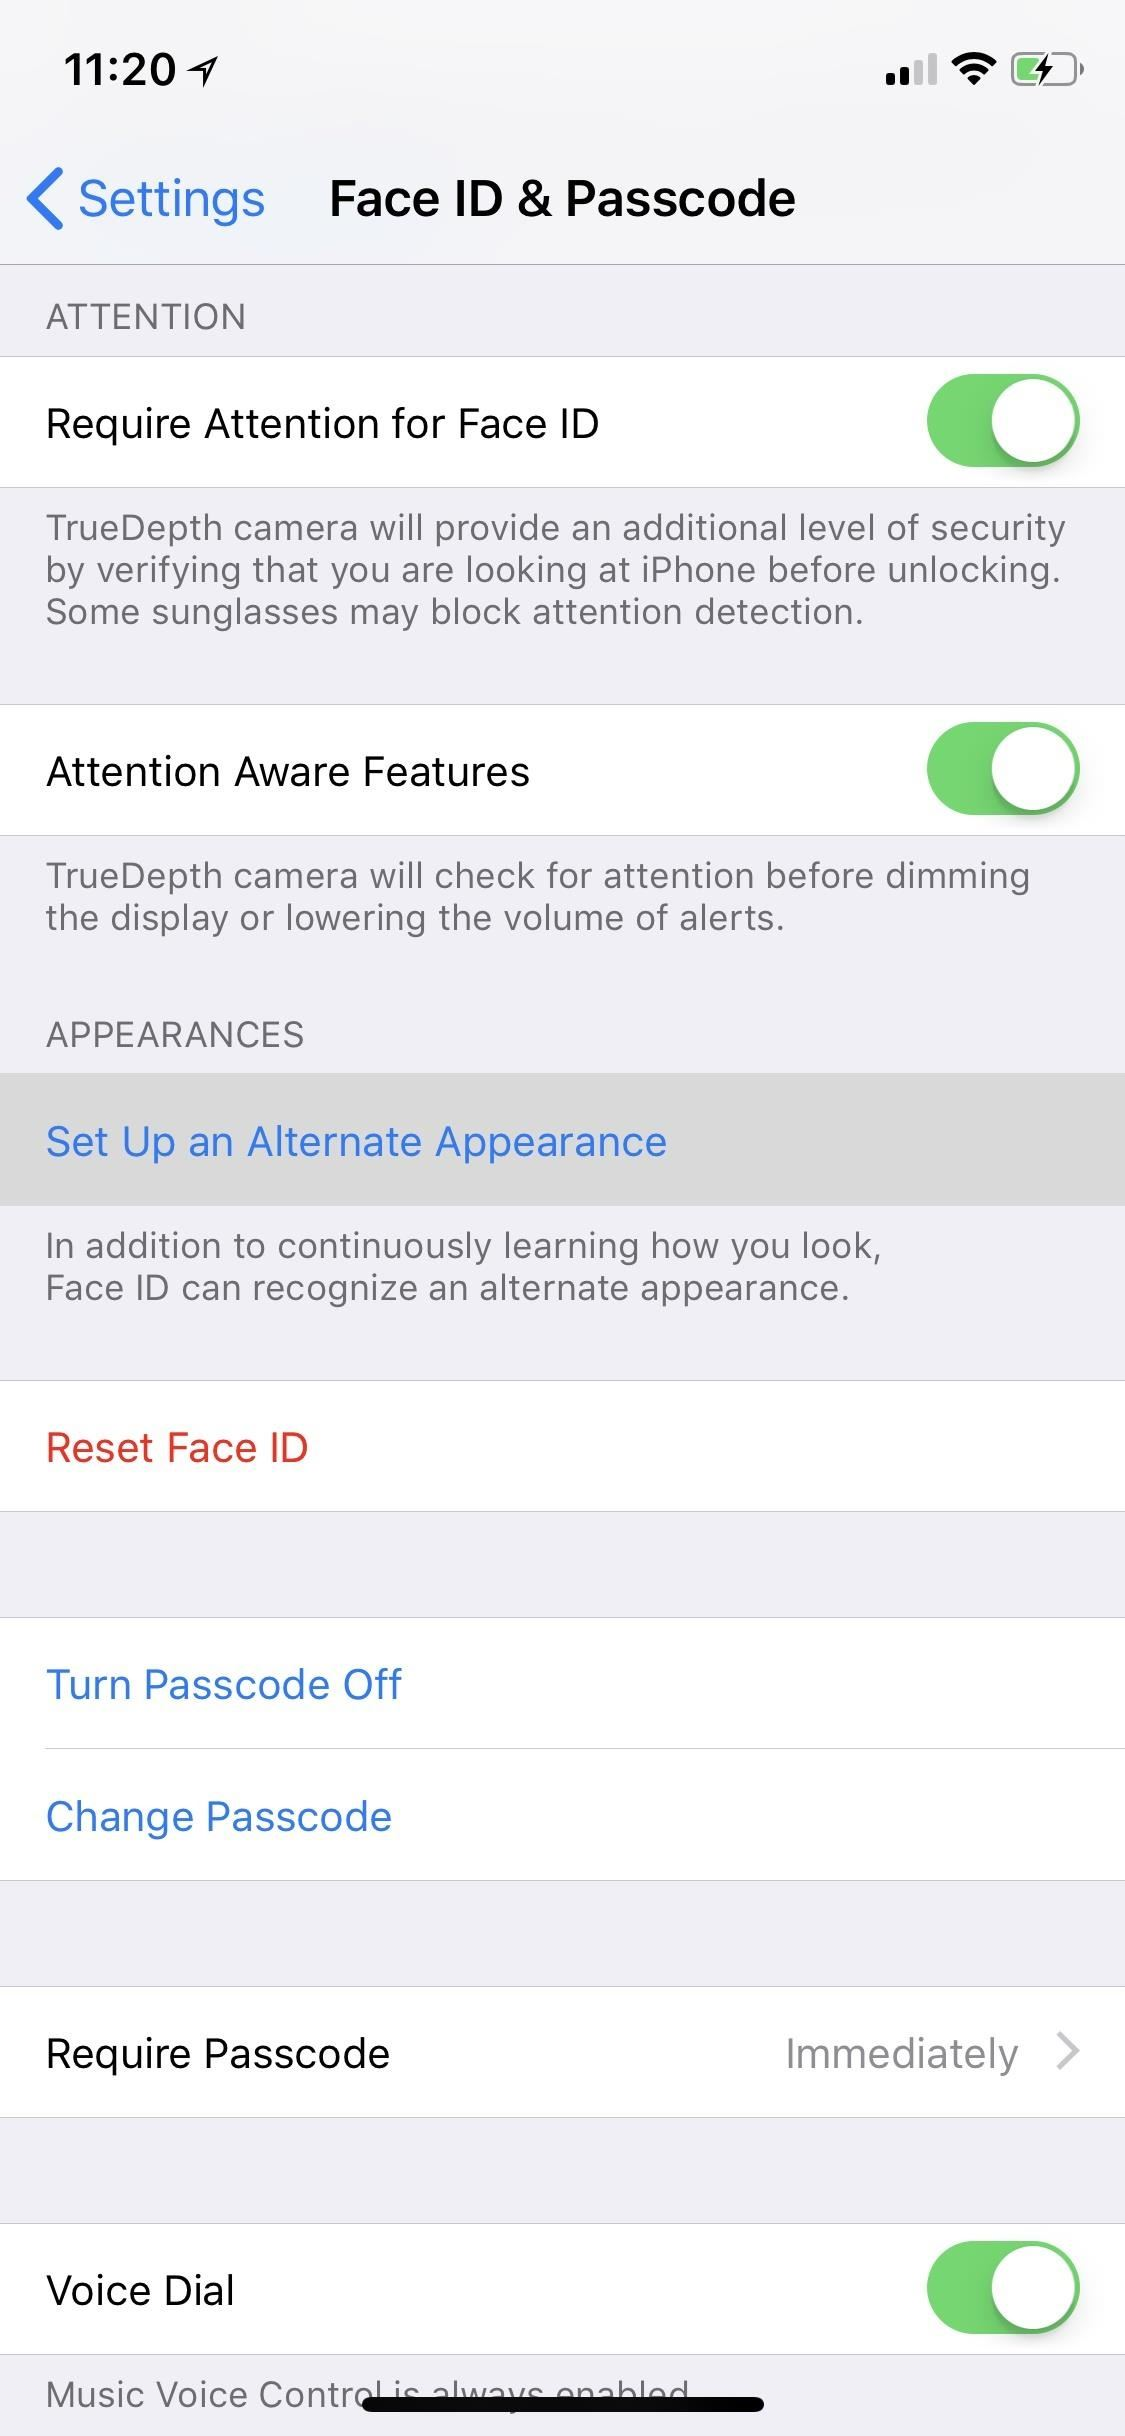 100+ Coolest New iOS 12 Features You Didn't Know About